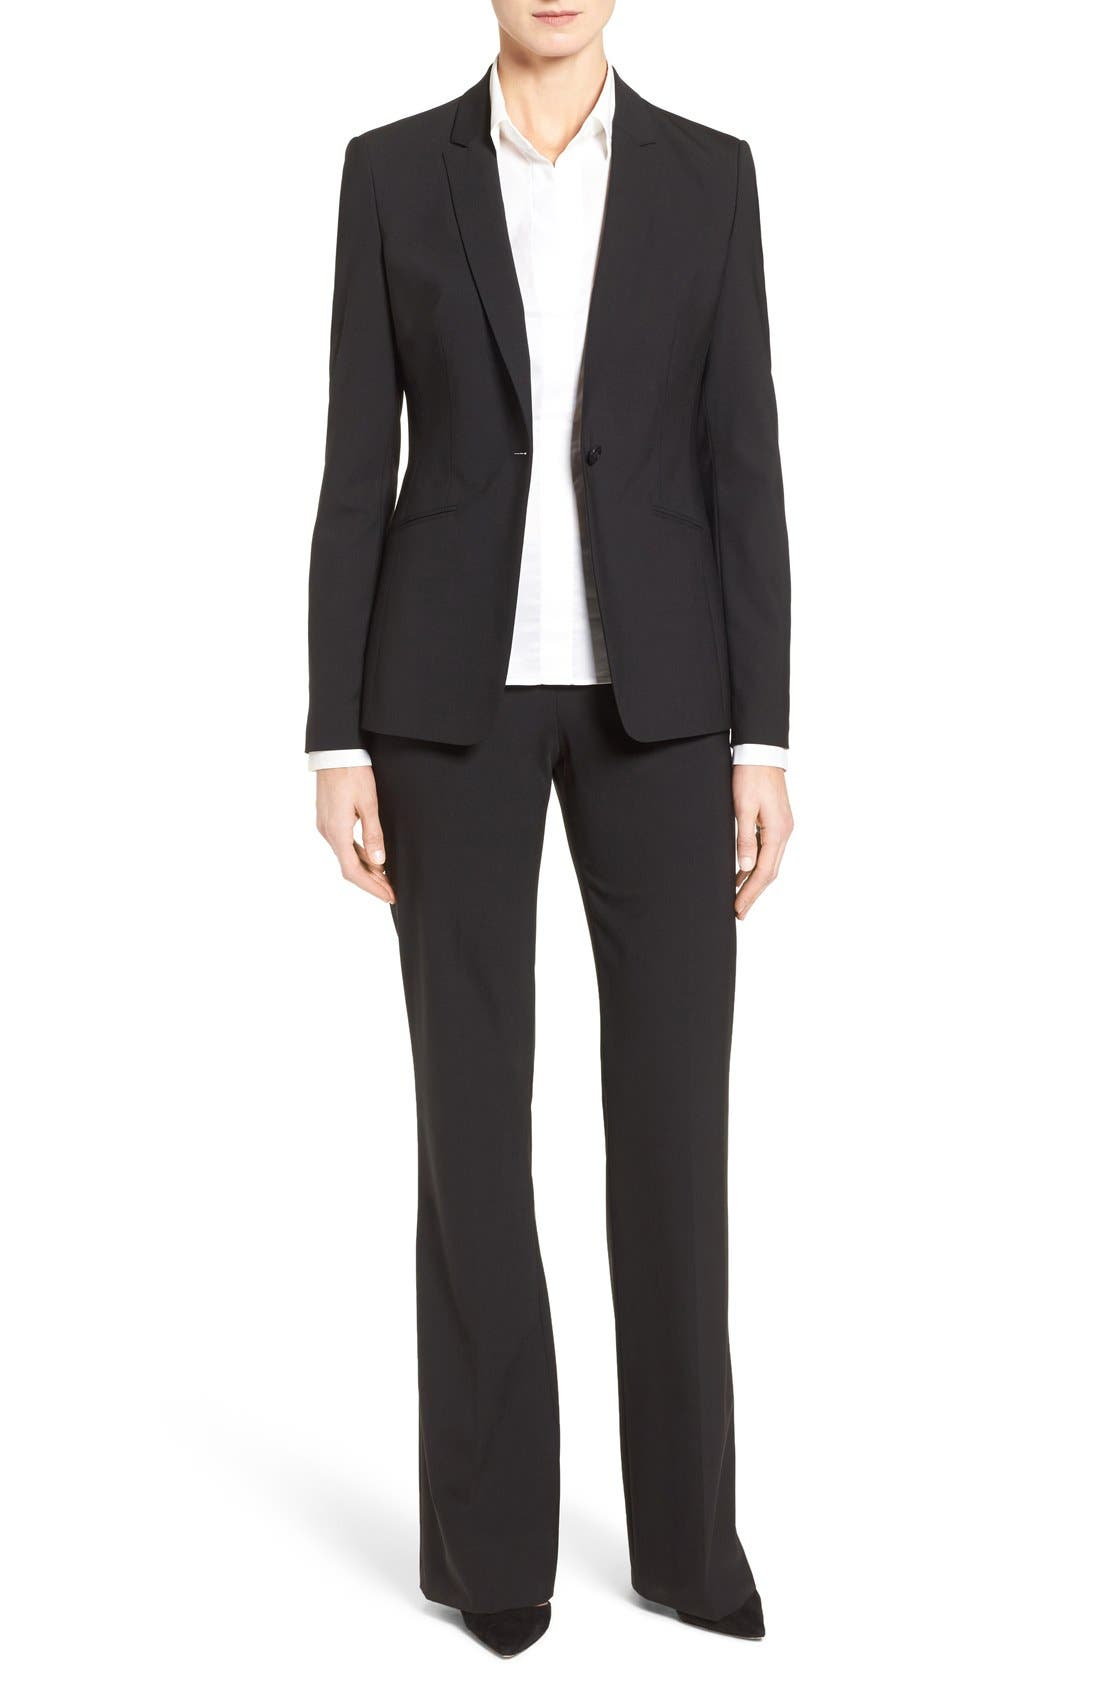 BOSS, Jabina Tropical Stretch Wool Jacket, Alternate thumbnail 12, color, BLACK